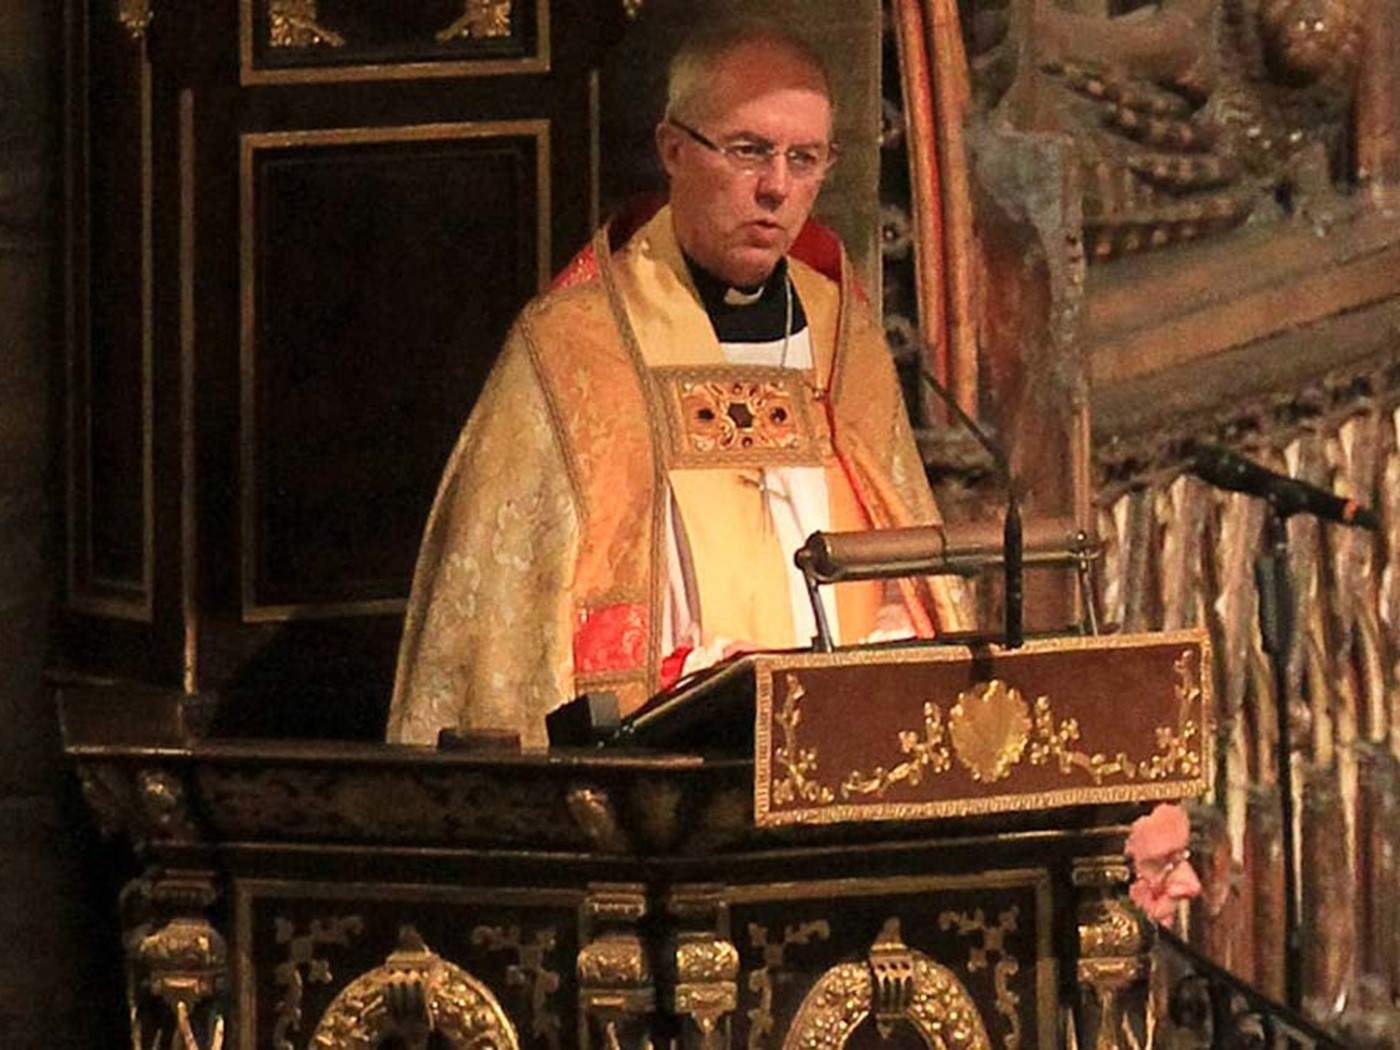 The Right Honourable and Most Reverend Justin Welby, Archbishop of Canterbury, Primate of All England, and Metropolitan, gives the Address